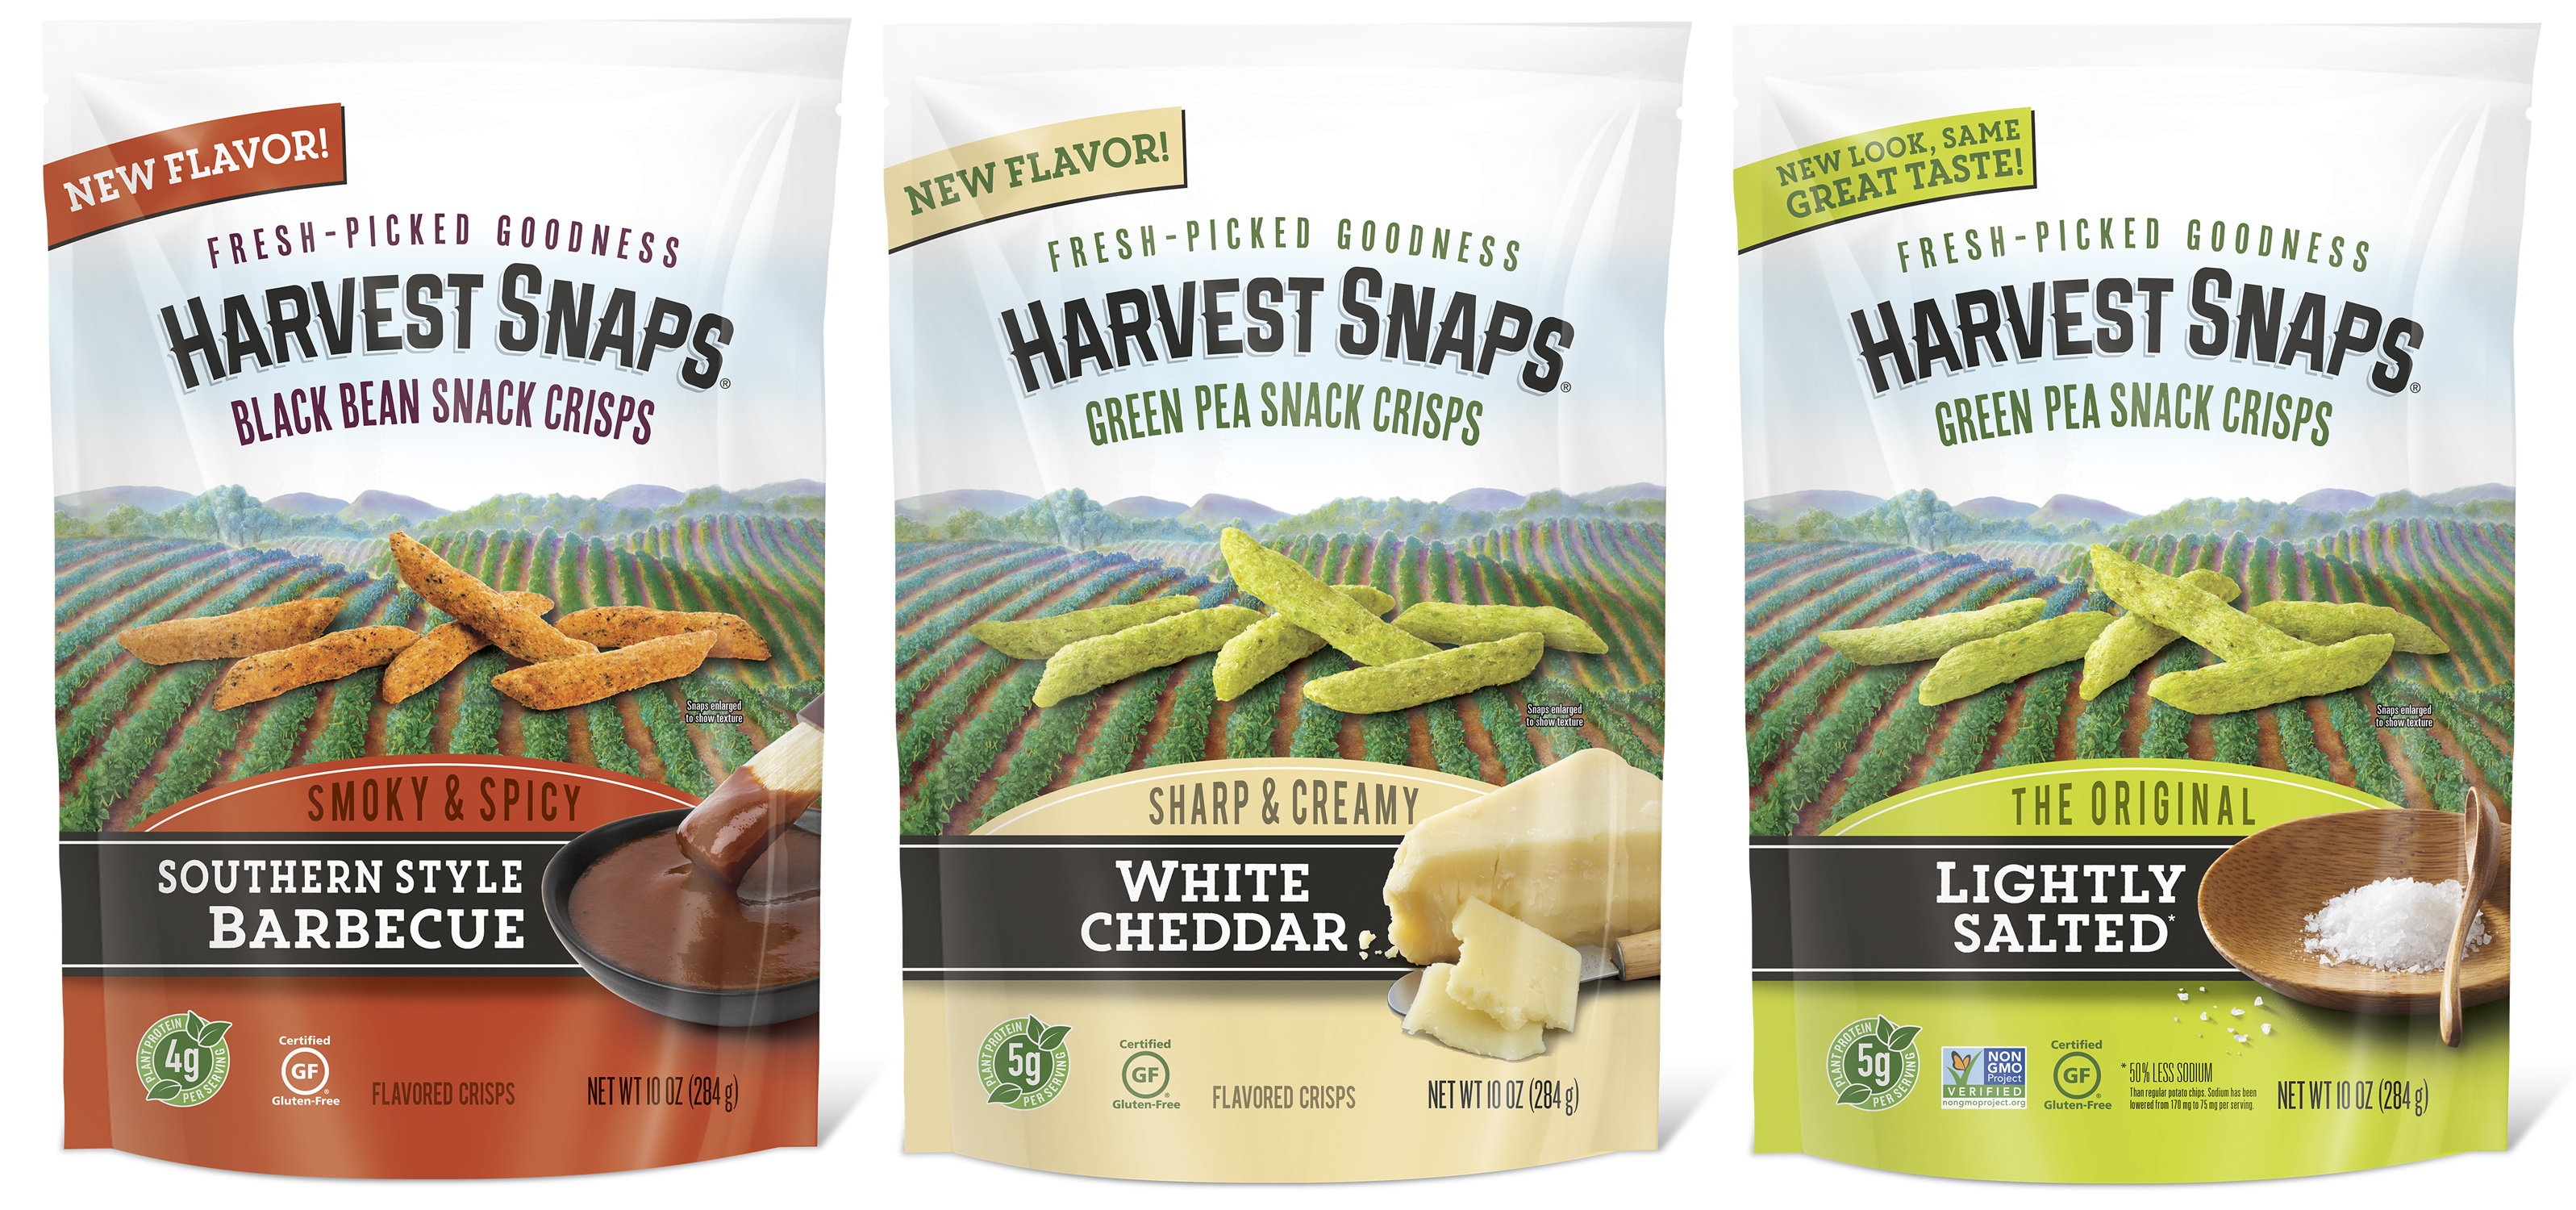 Your interest in Harvest Snaps New Bigger Bag Flavors